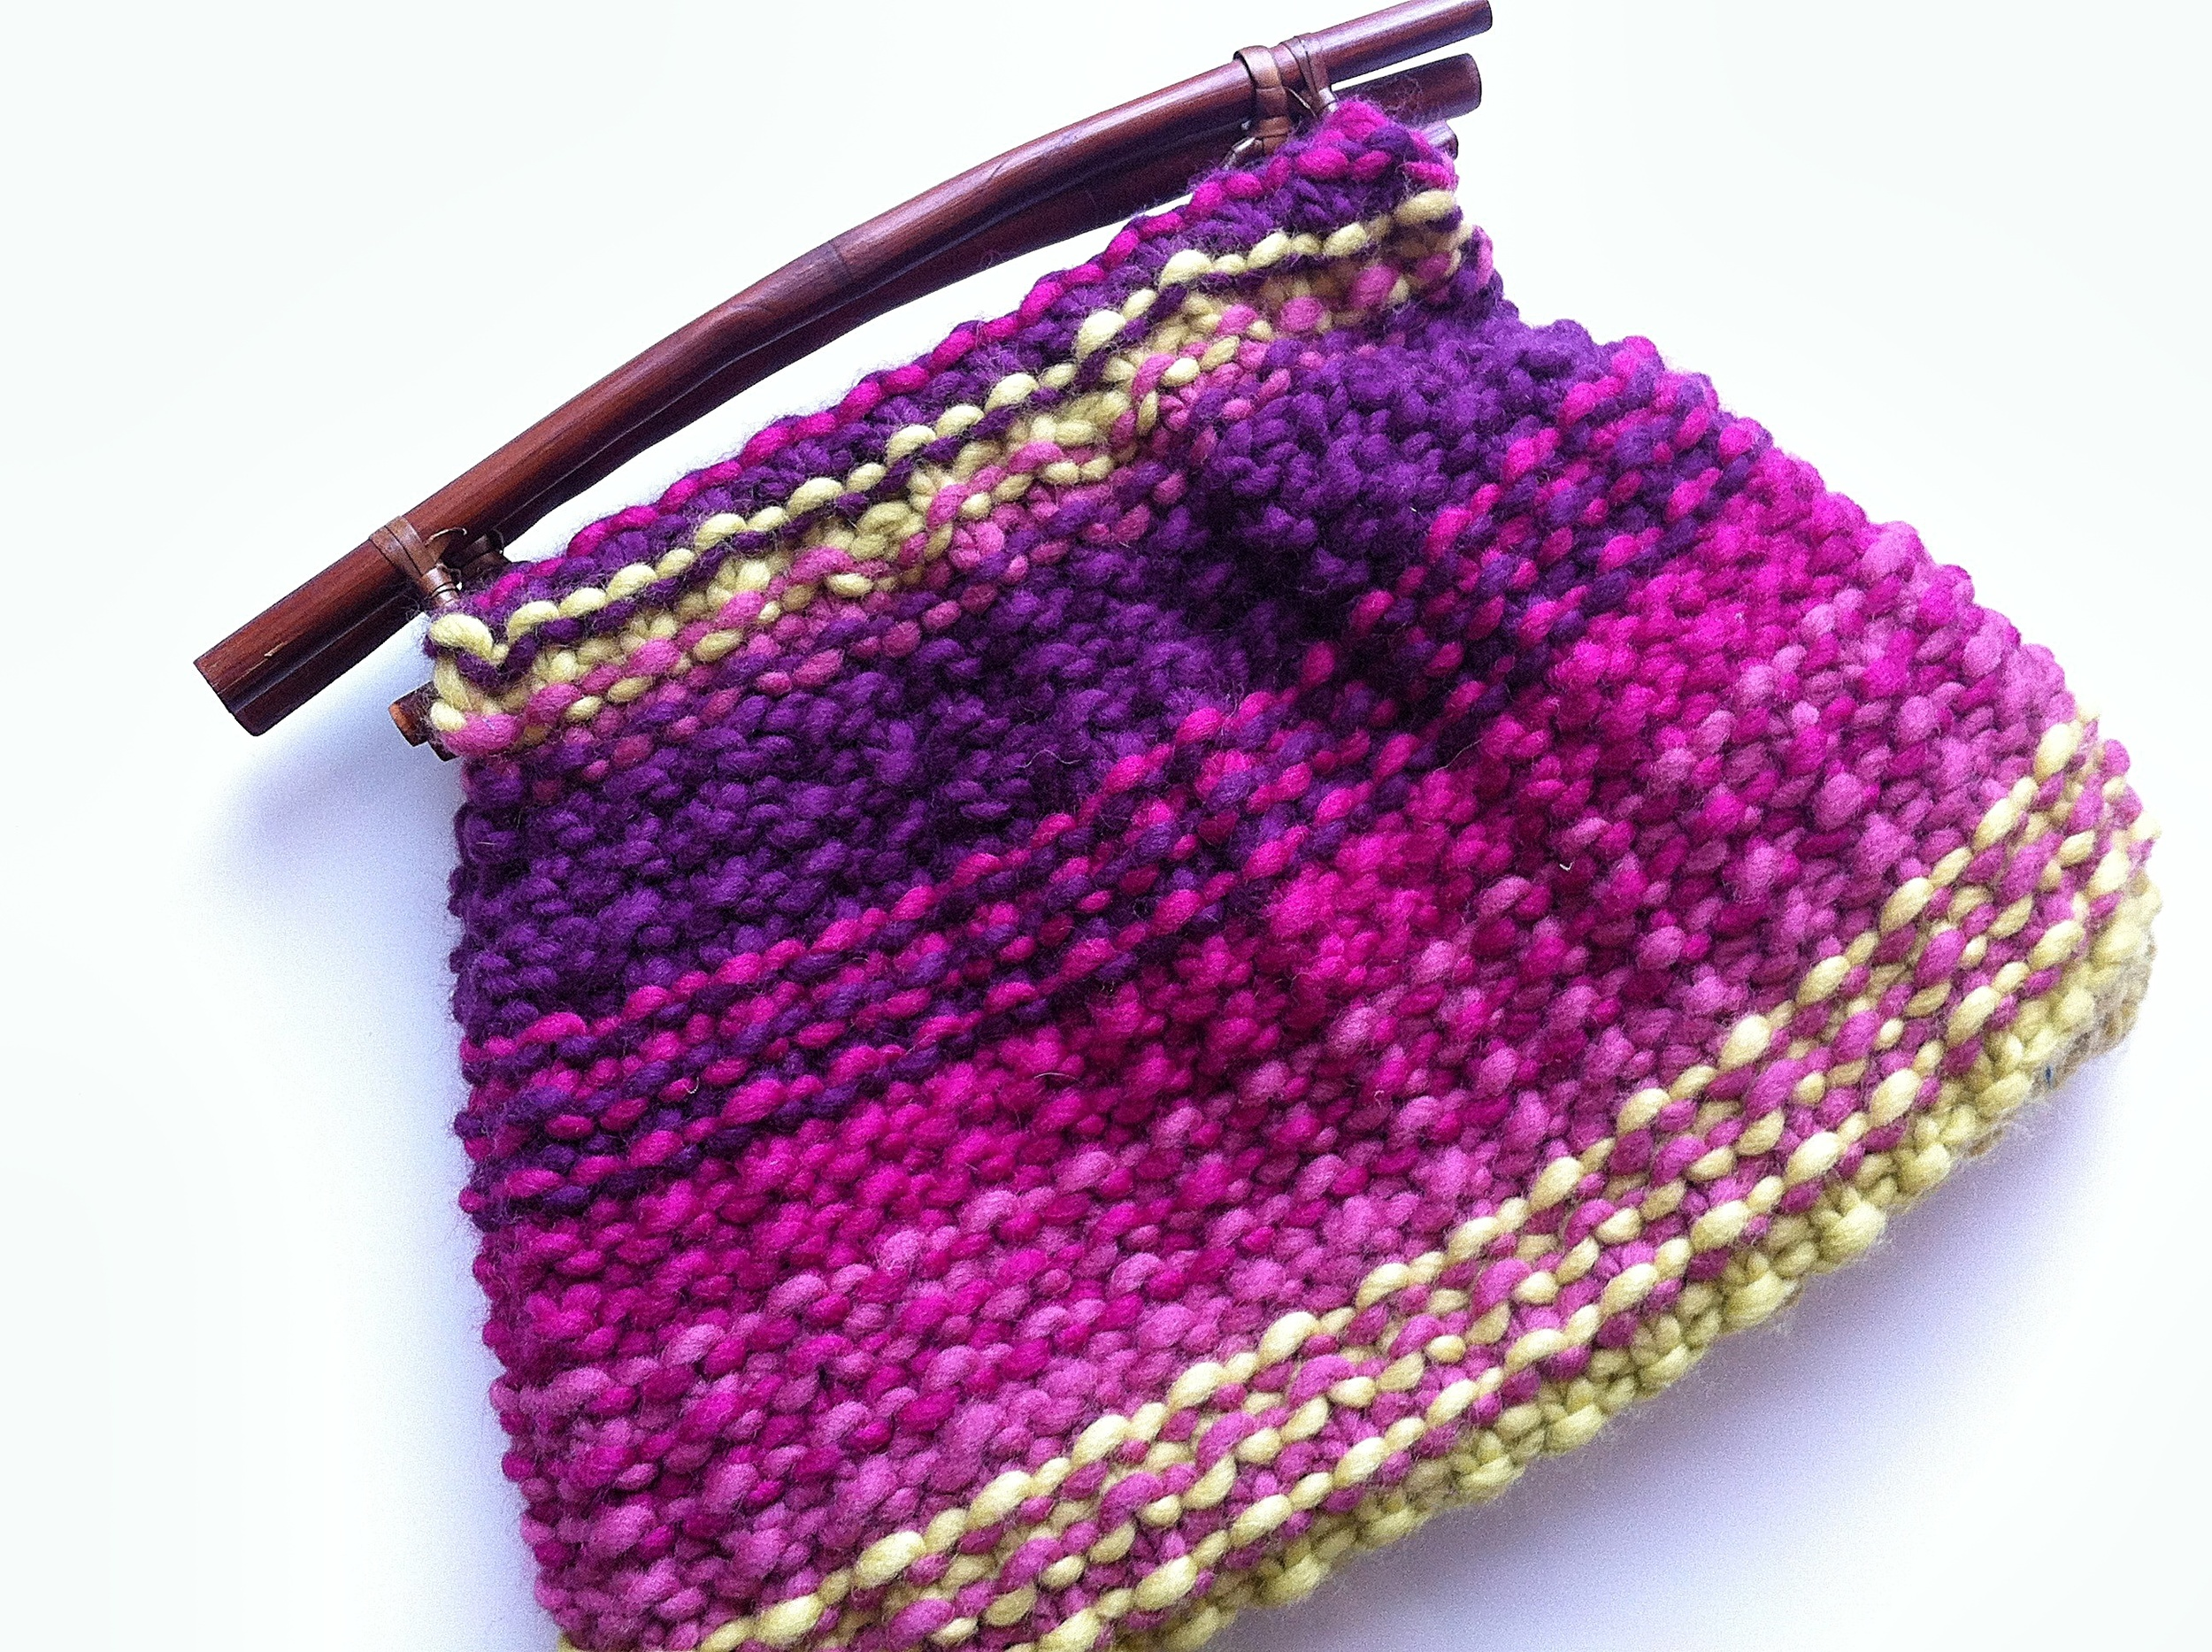 Pattern:    Knitting Bag    by Debbie Bliss Yarn: Debbie Bliss Como in 19010 (Raspberry), 19021 (Magenta), 19022 (Purple) and 19018 (Yellow/Green) Yardage (for the Pre-Process Stashdown 2013): 160 yards Click the photo to link to my Ravelry project notes